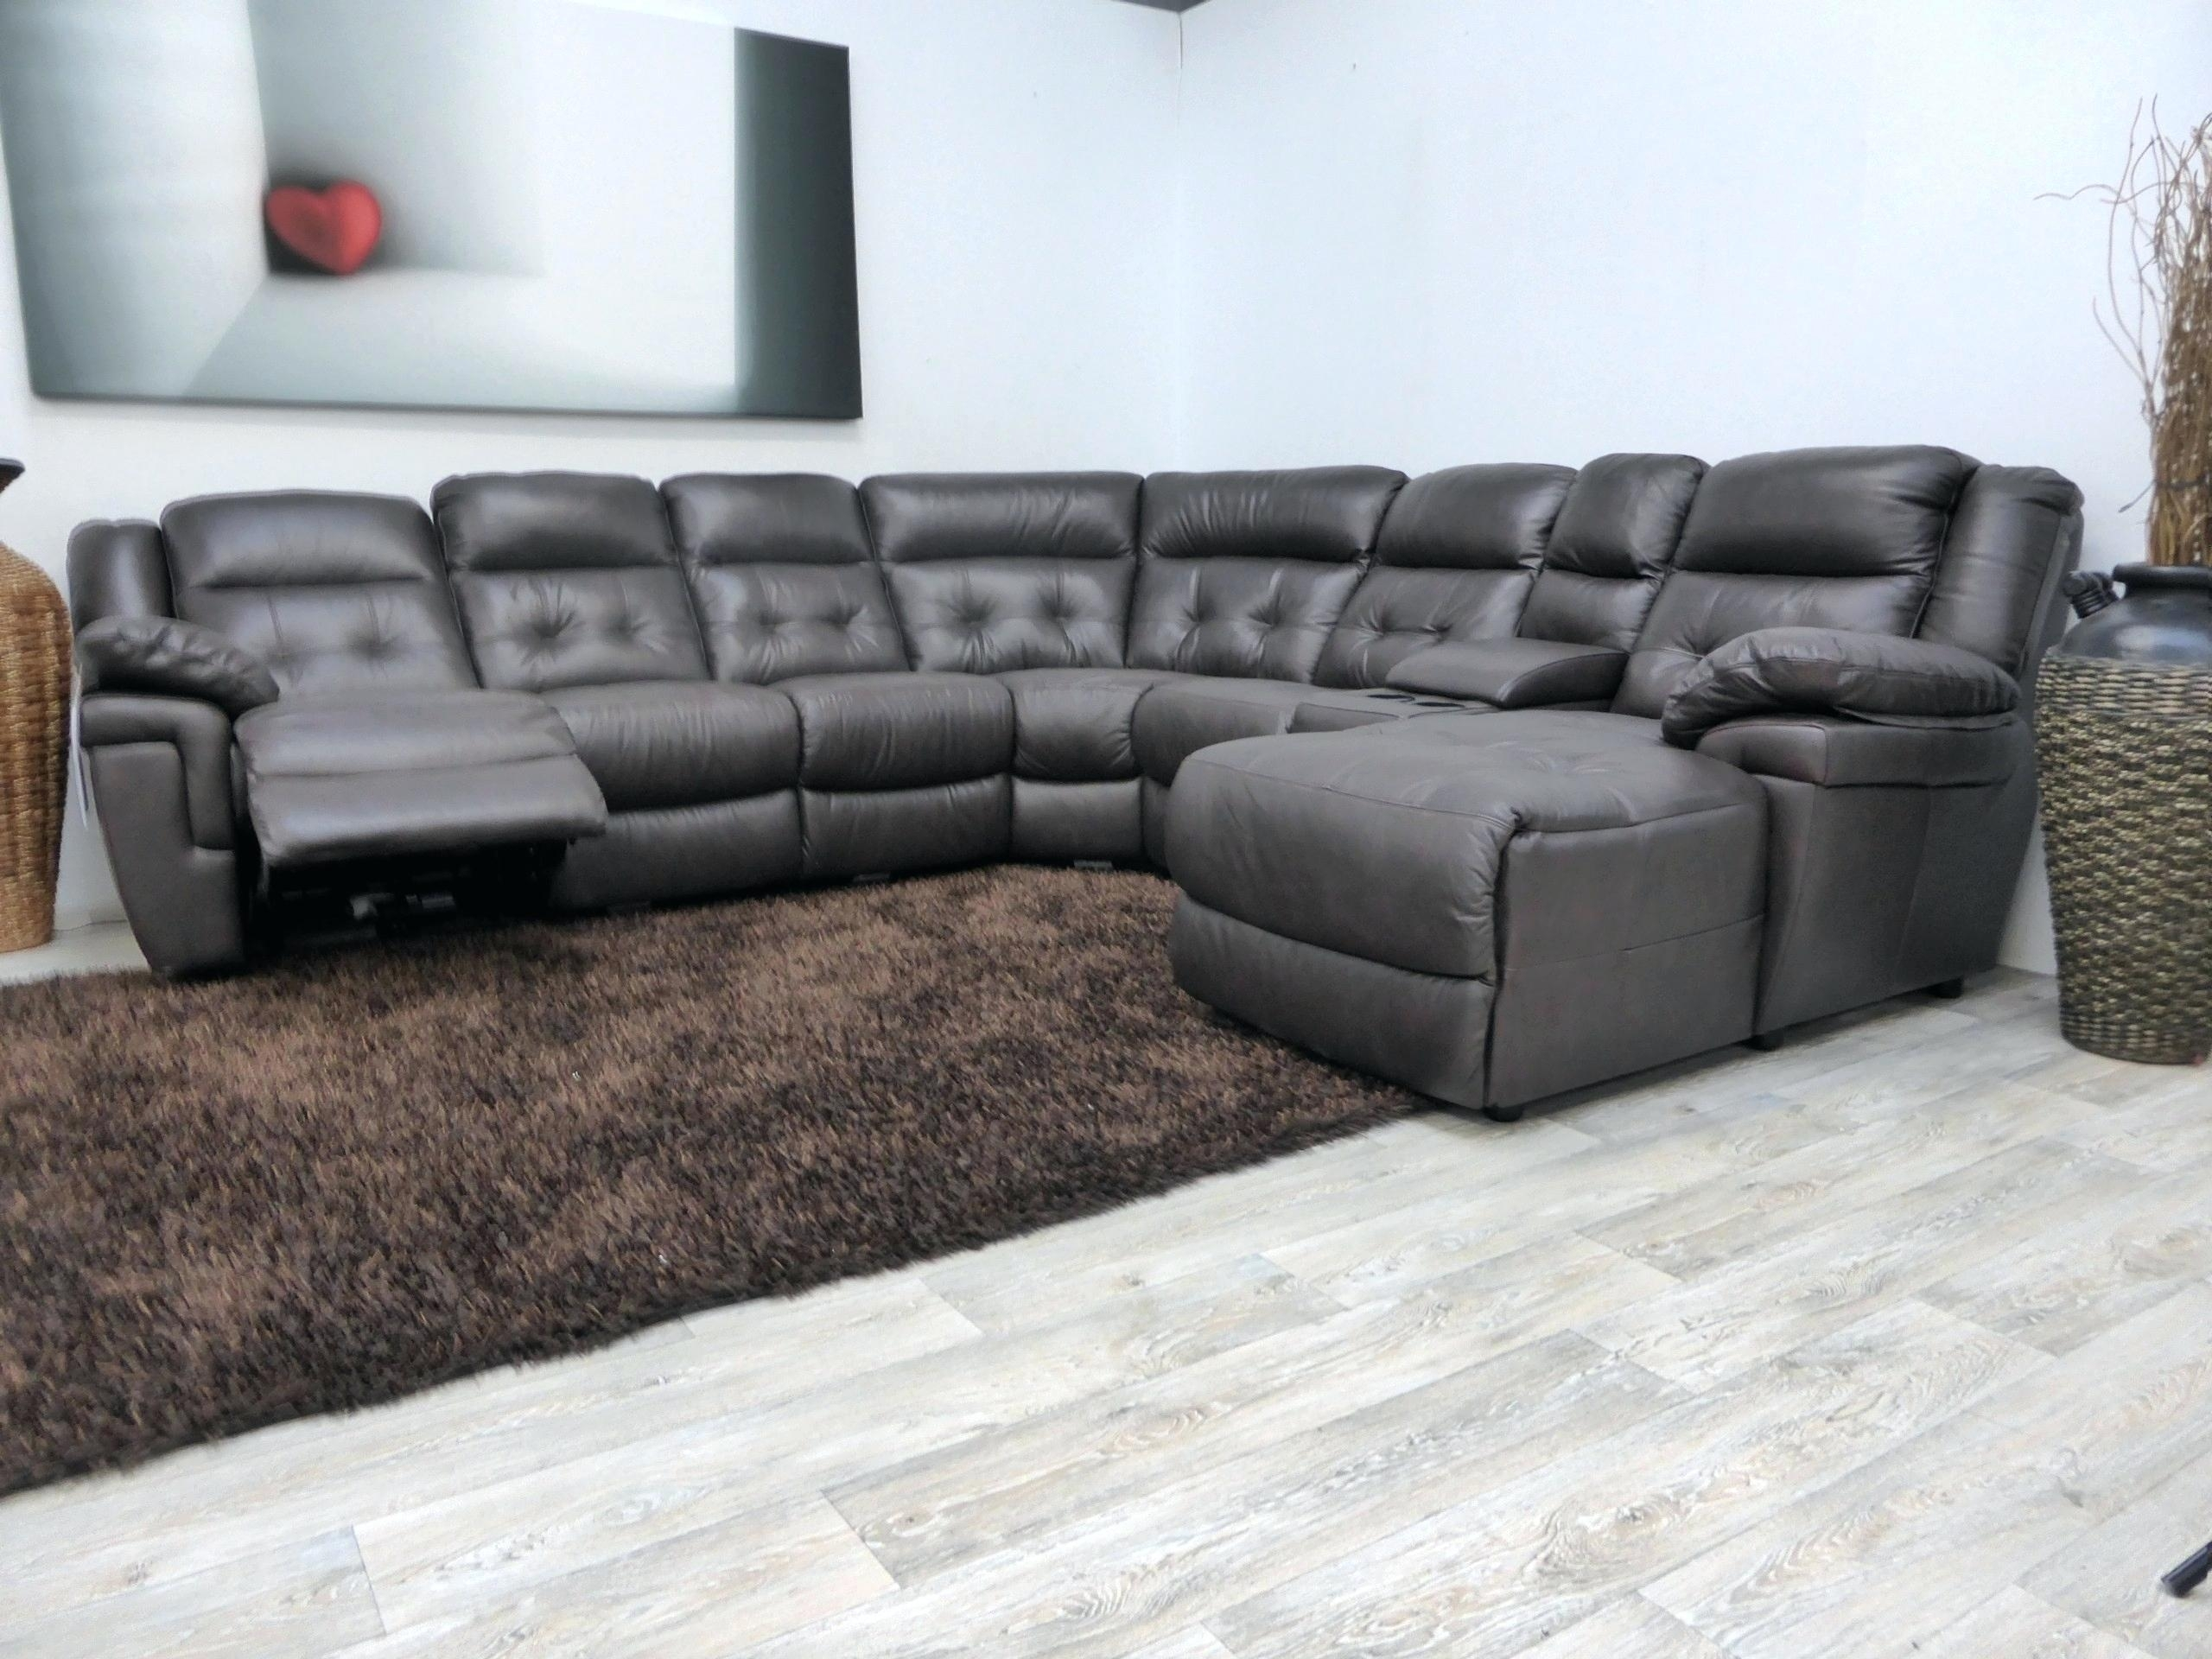 Affordable Sectional Sofa Beds Sofas Canada Sectionals Ottawa within Ottawa Sectional Sofas (Image 1 of 10)